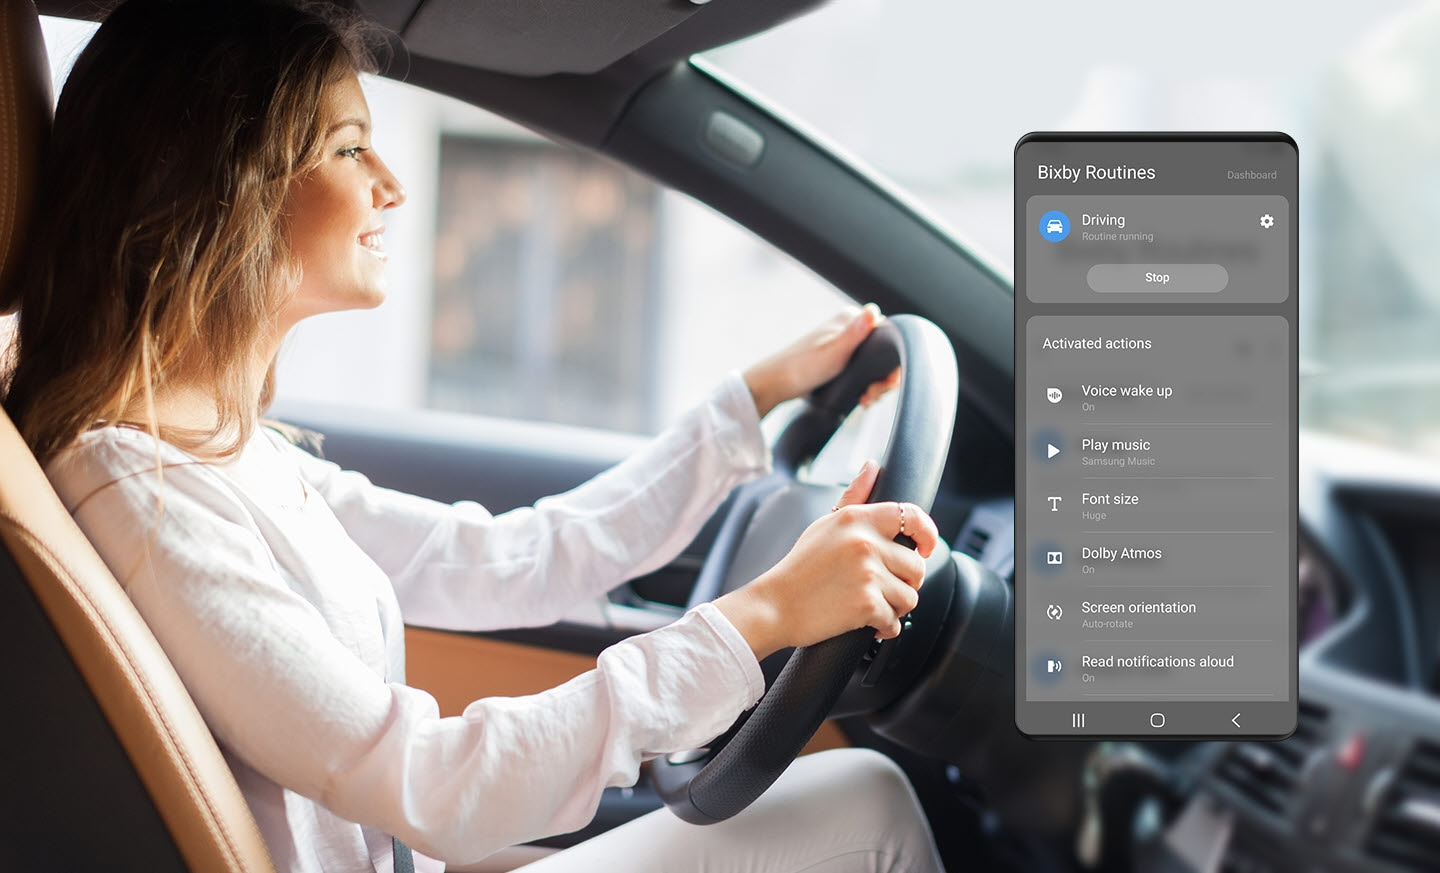 A scene of running Bixby Routines for driving and a picture of woman driving in the car.